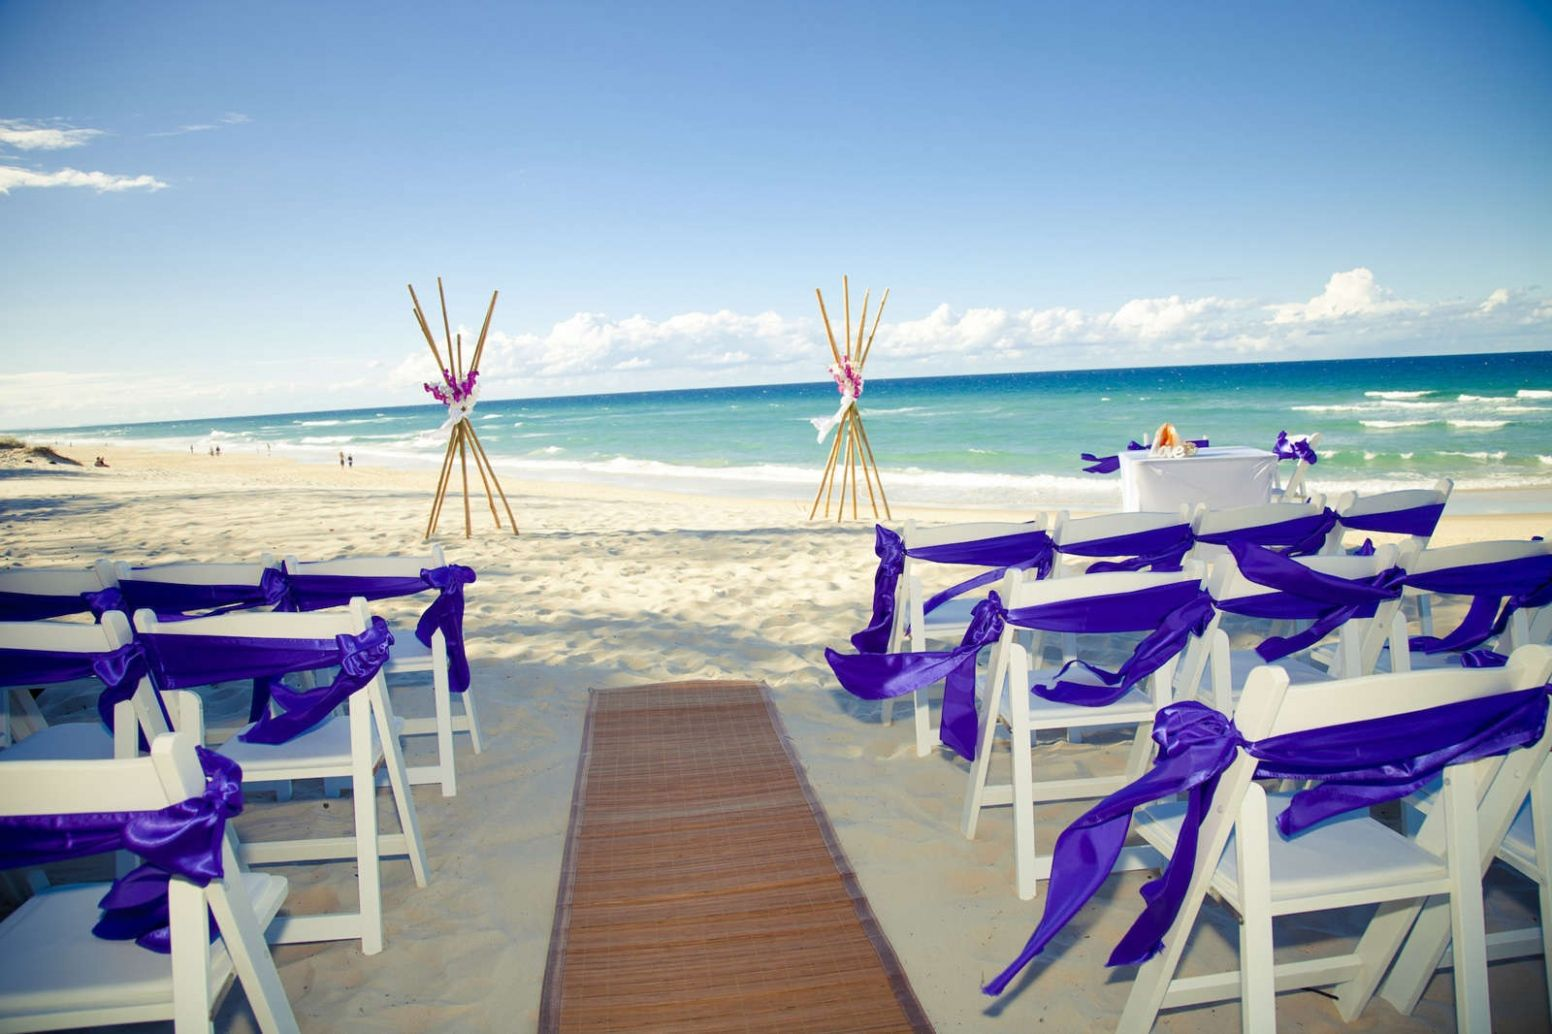 Beach Wedding Venues Gulfport Ms €� Mini Bridal Weddings In Biloxi On The: Wedding Venue In Gulfport Ms At Reisefeber.org